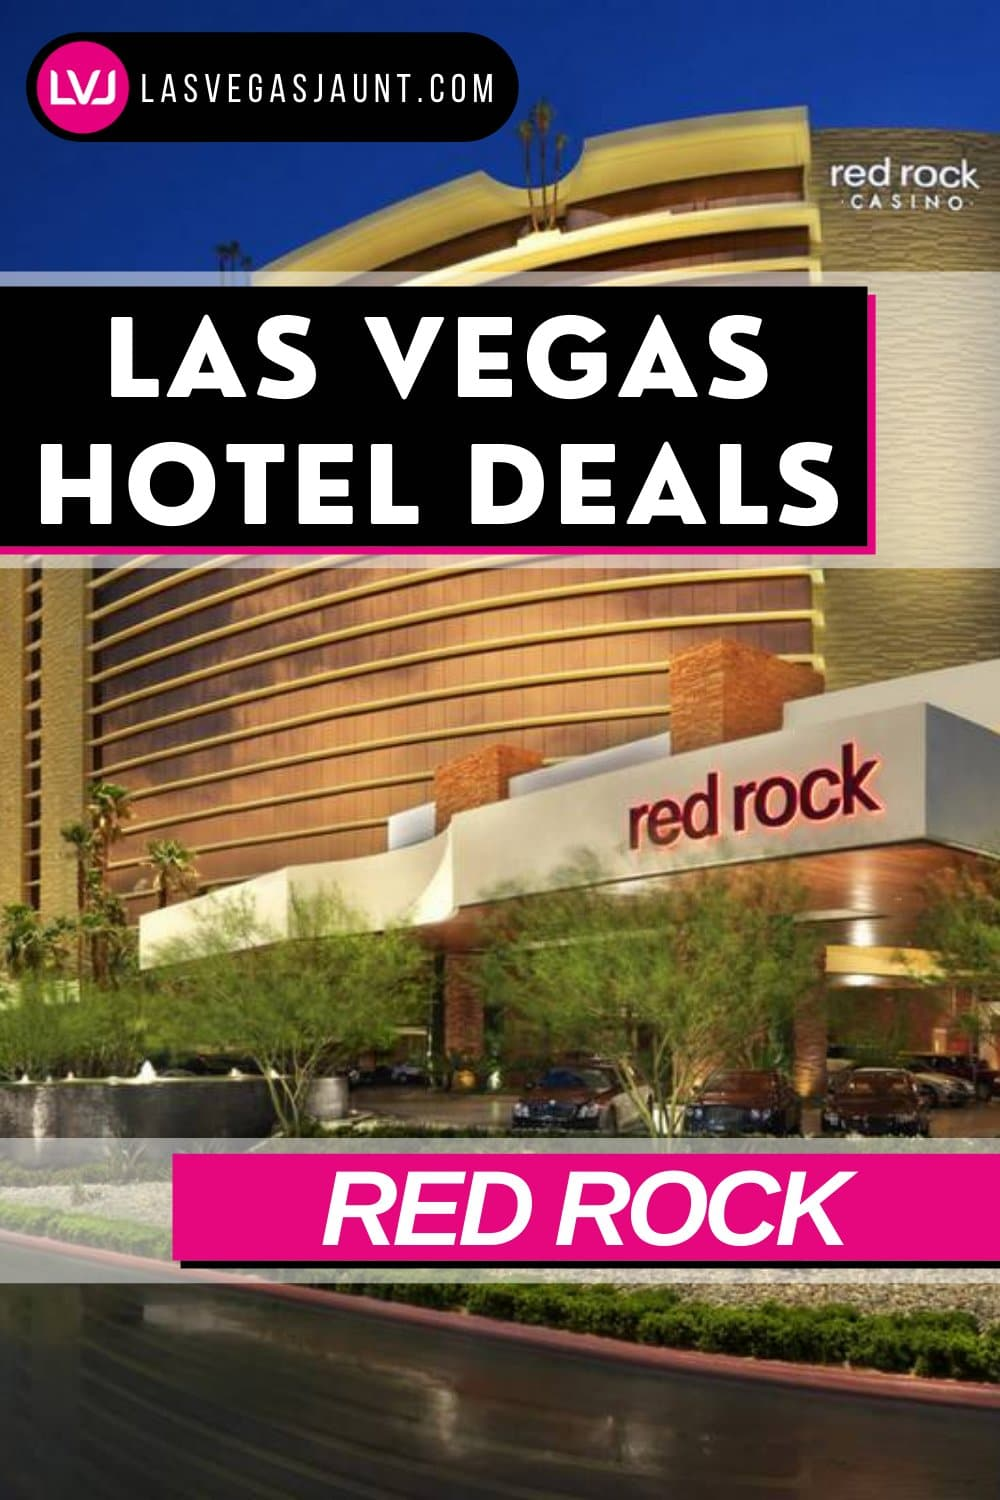 Red Rock Hotel Las Vegas Deals Promo Codes & Discounts